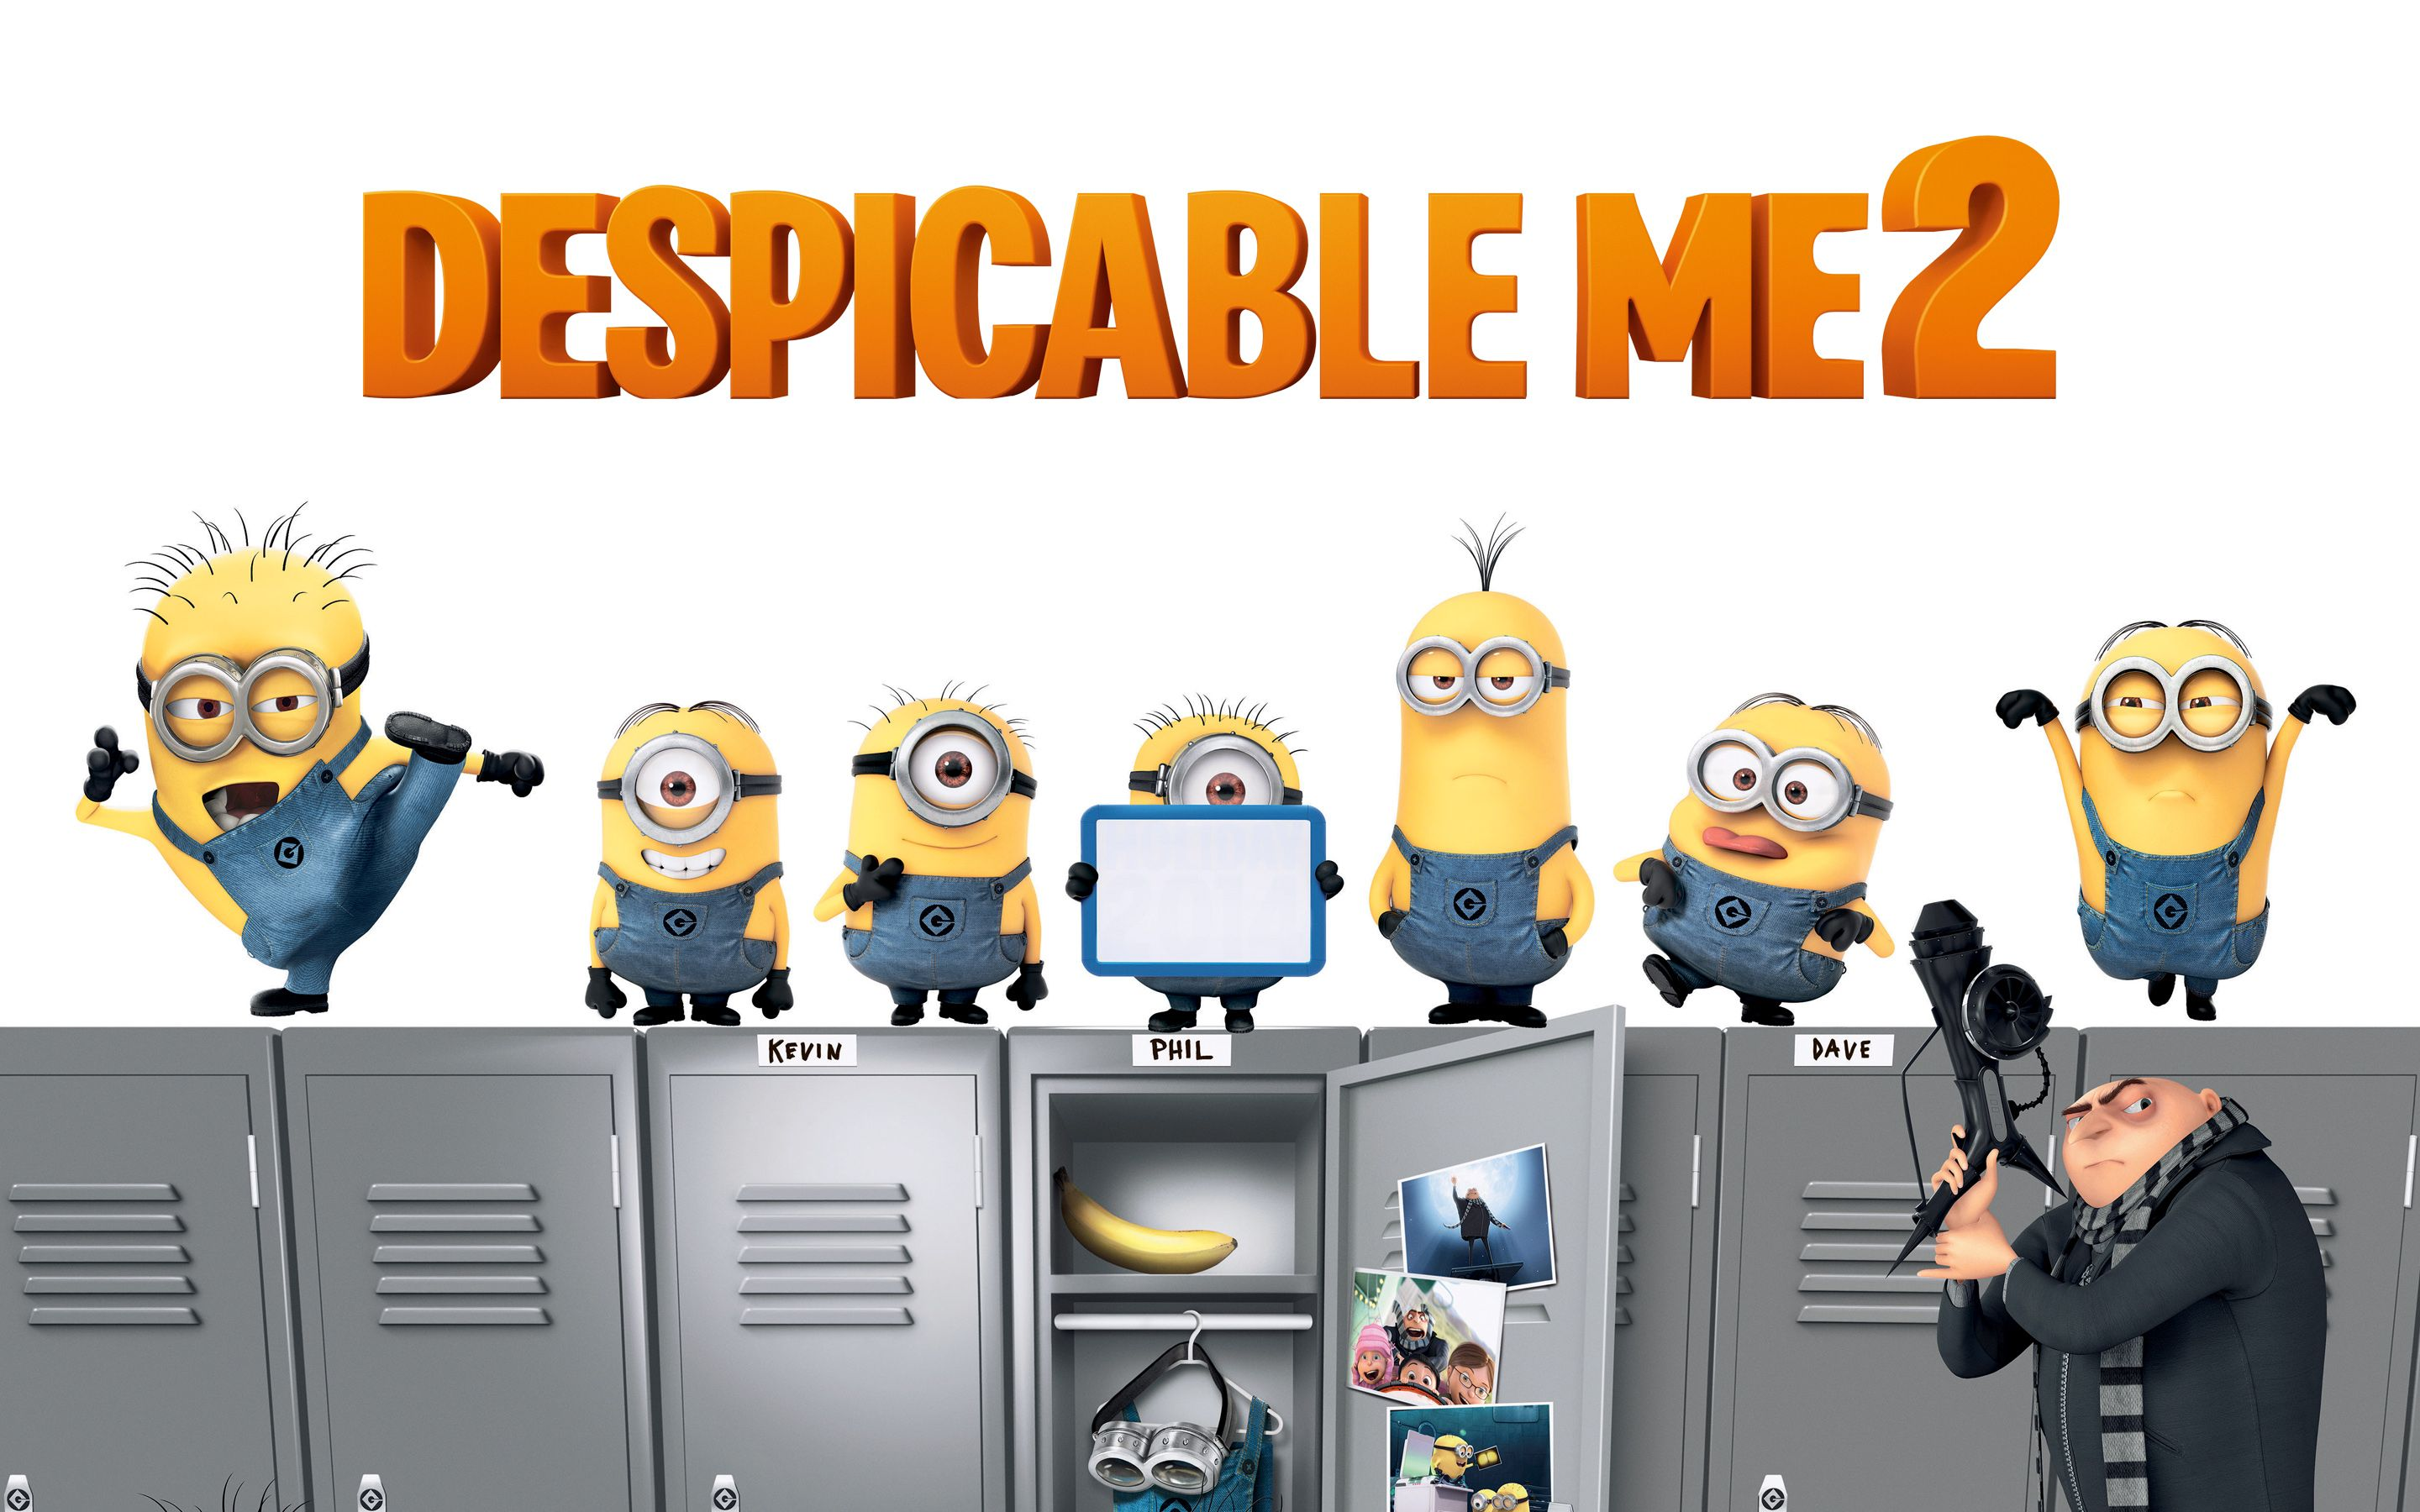 Despicable me 2 free movies.